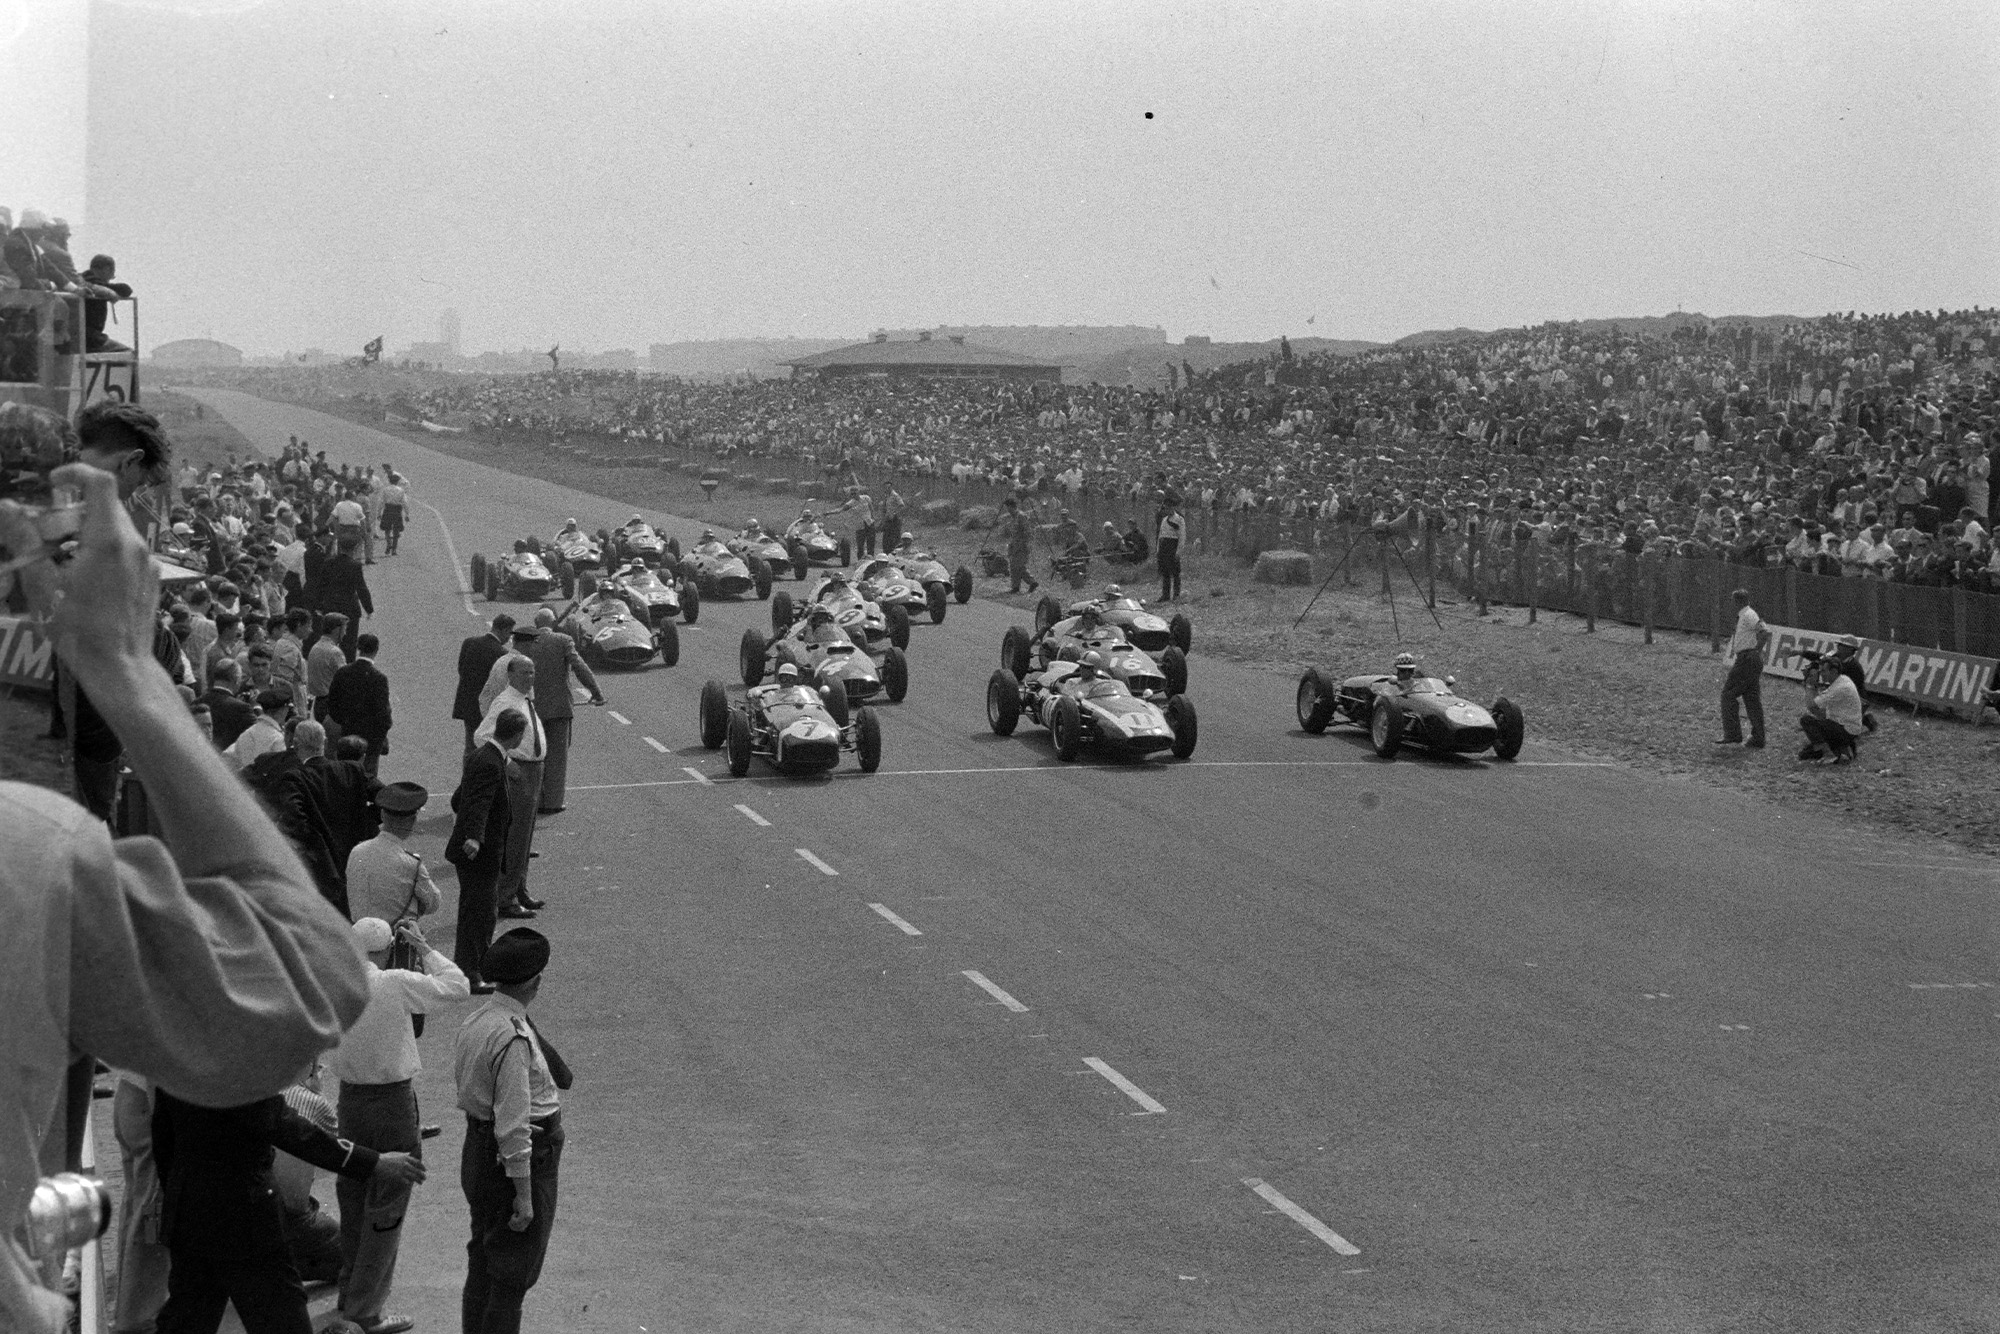 Drivers anticipate the starting flag